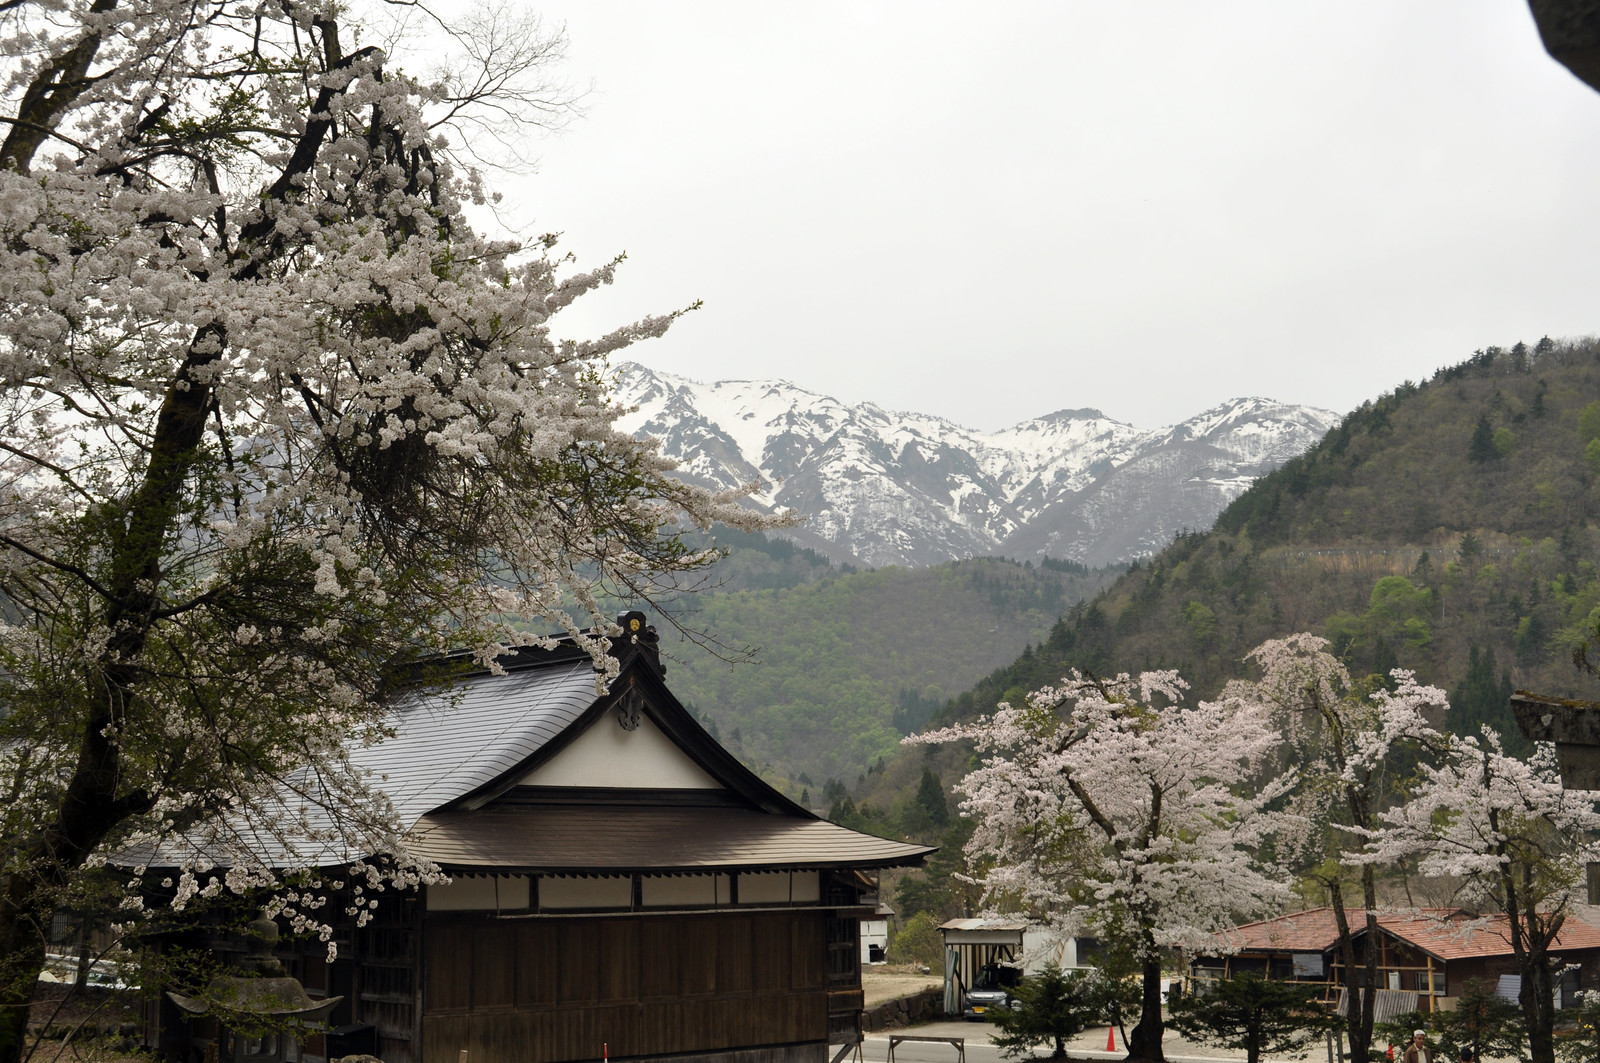 Shirakawa mountains